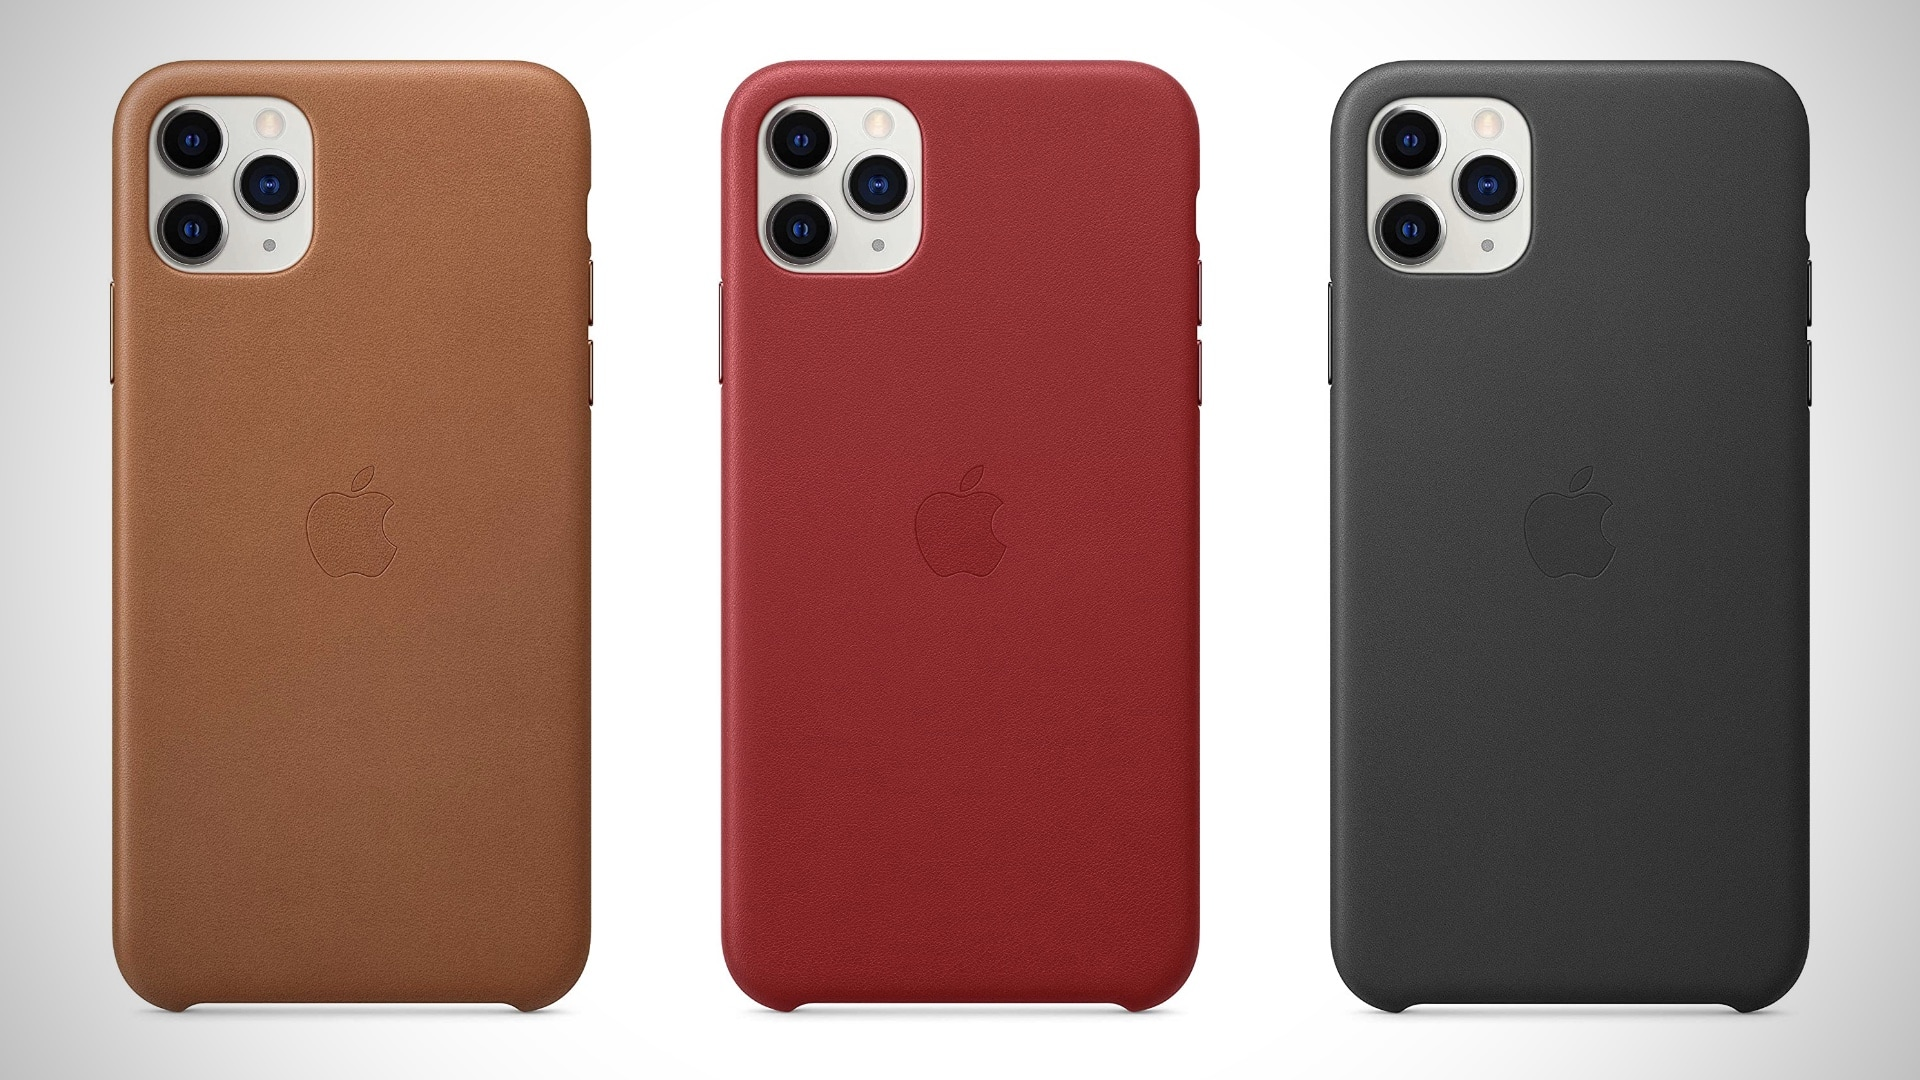 Apple's official iPhone 11 Pro cases hit all-time lows on Amazon